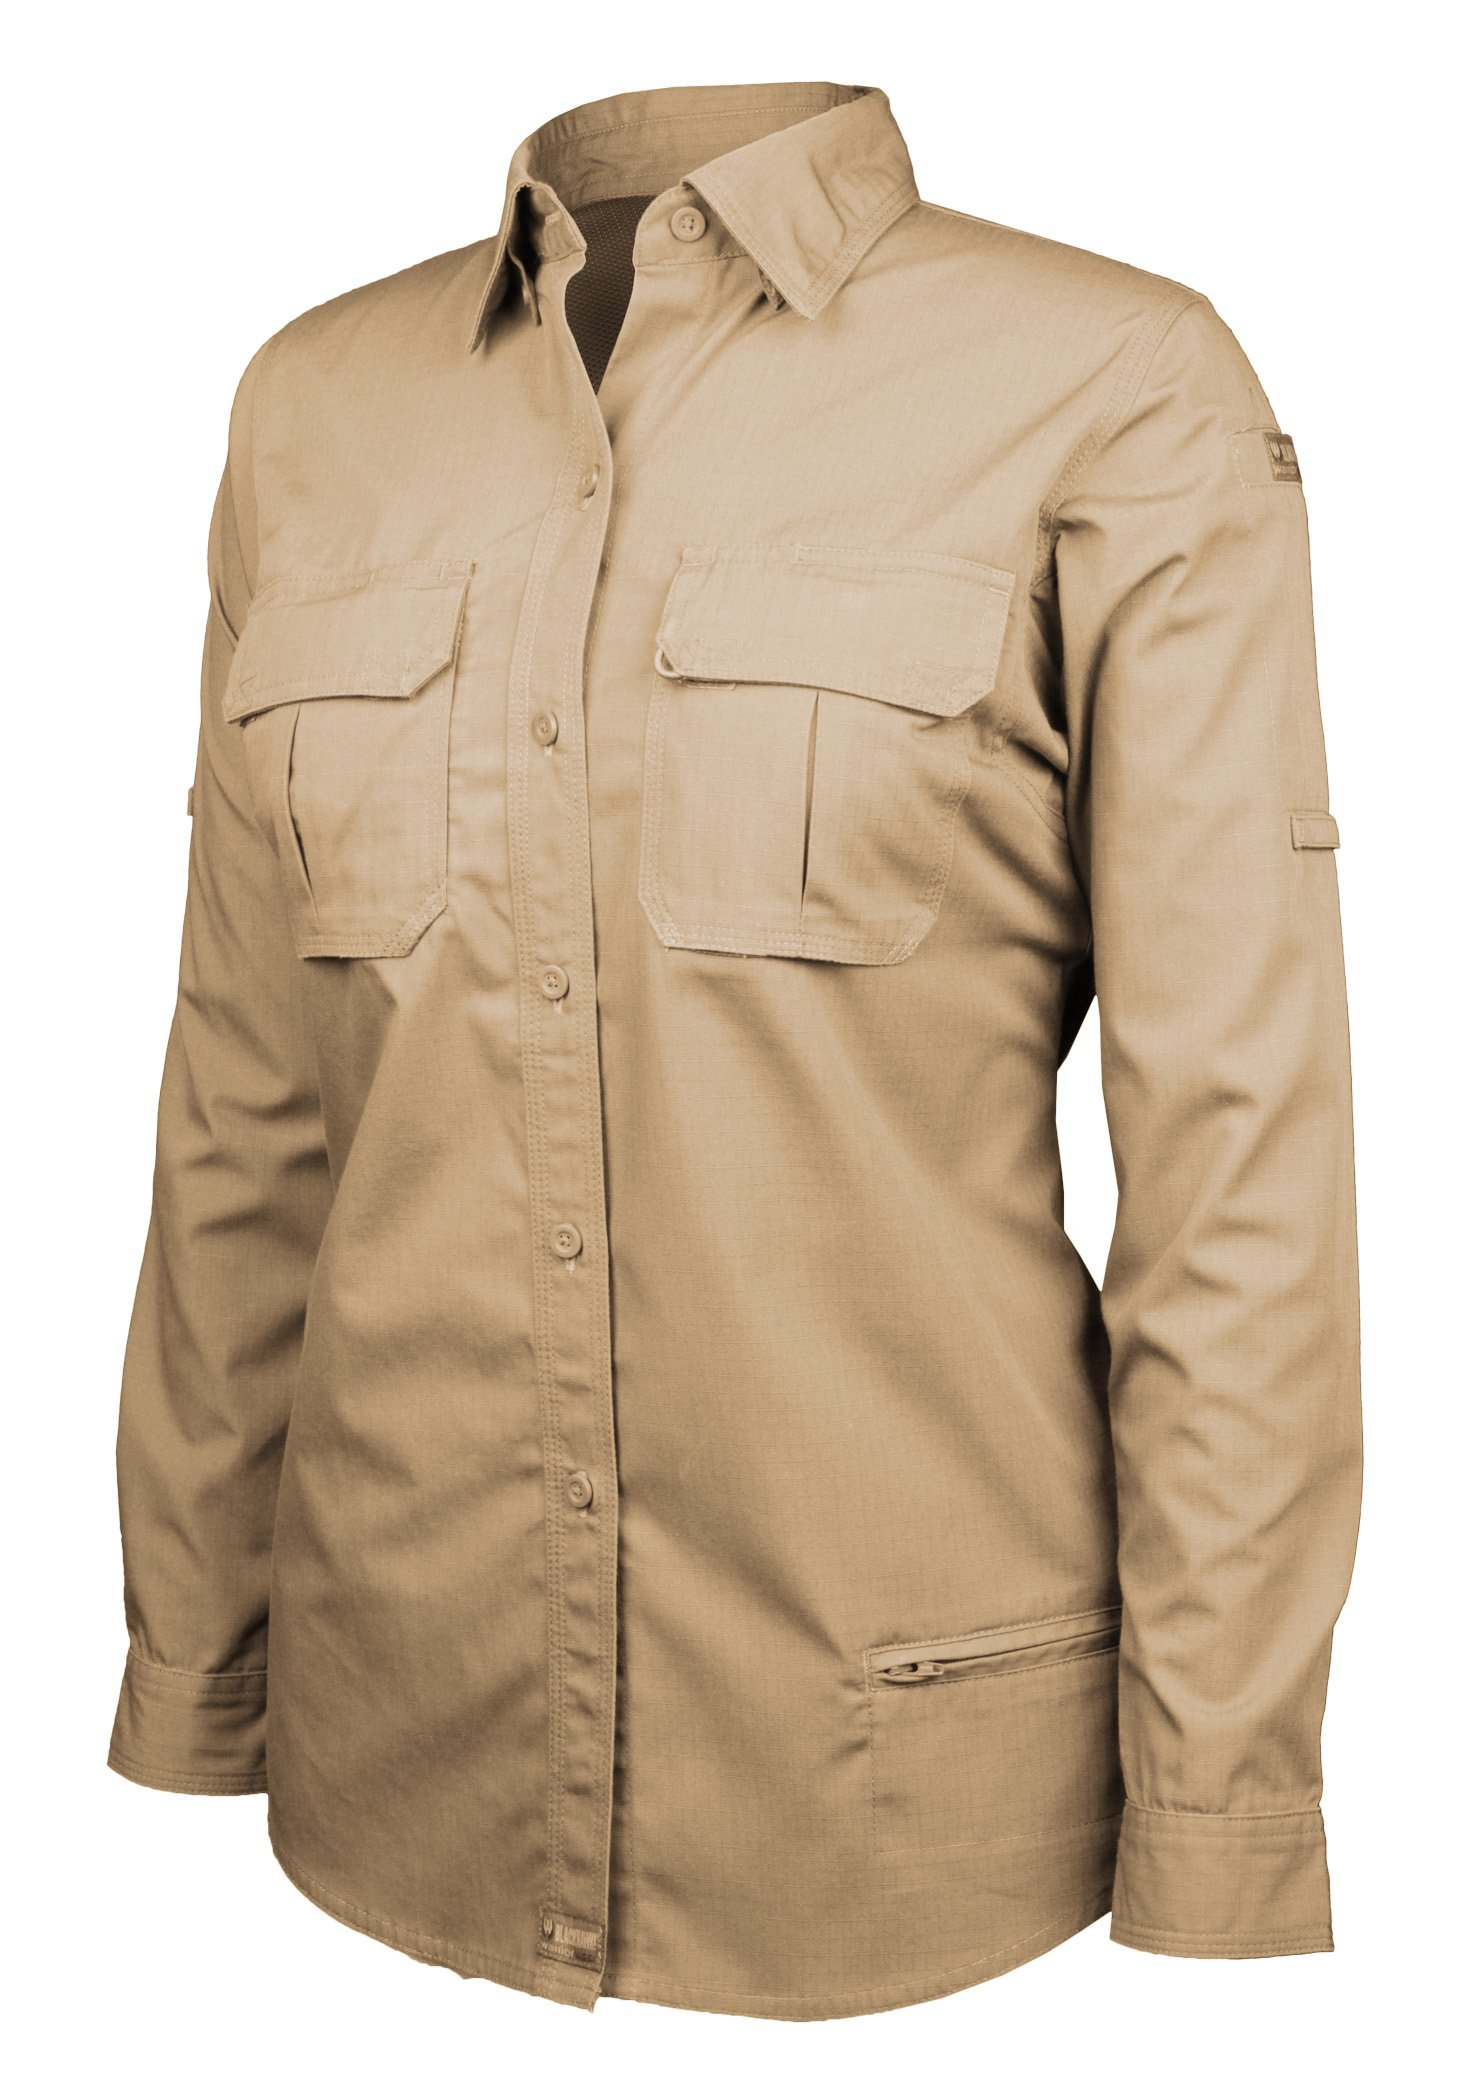 Blackhawk! Women's Lightweight Tactical Long Sleeve Shirt, Khaki, Large by BLACKHAWK!